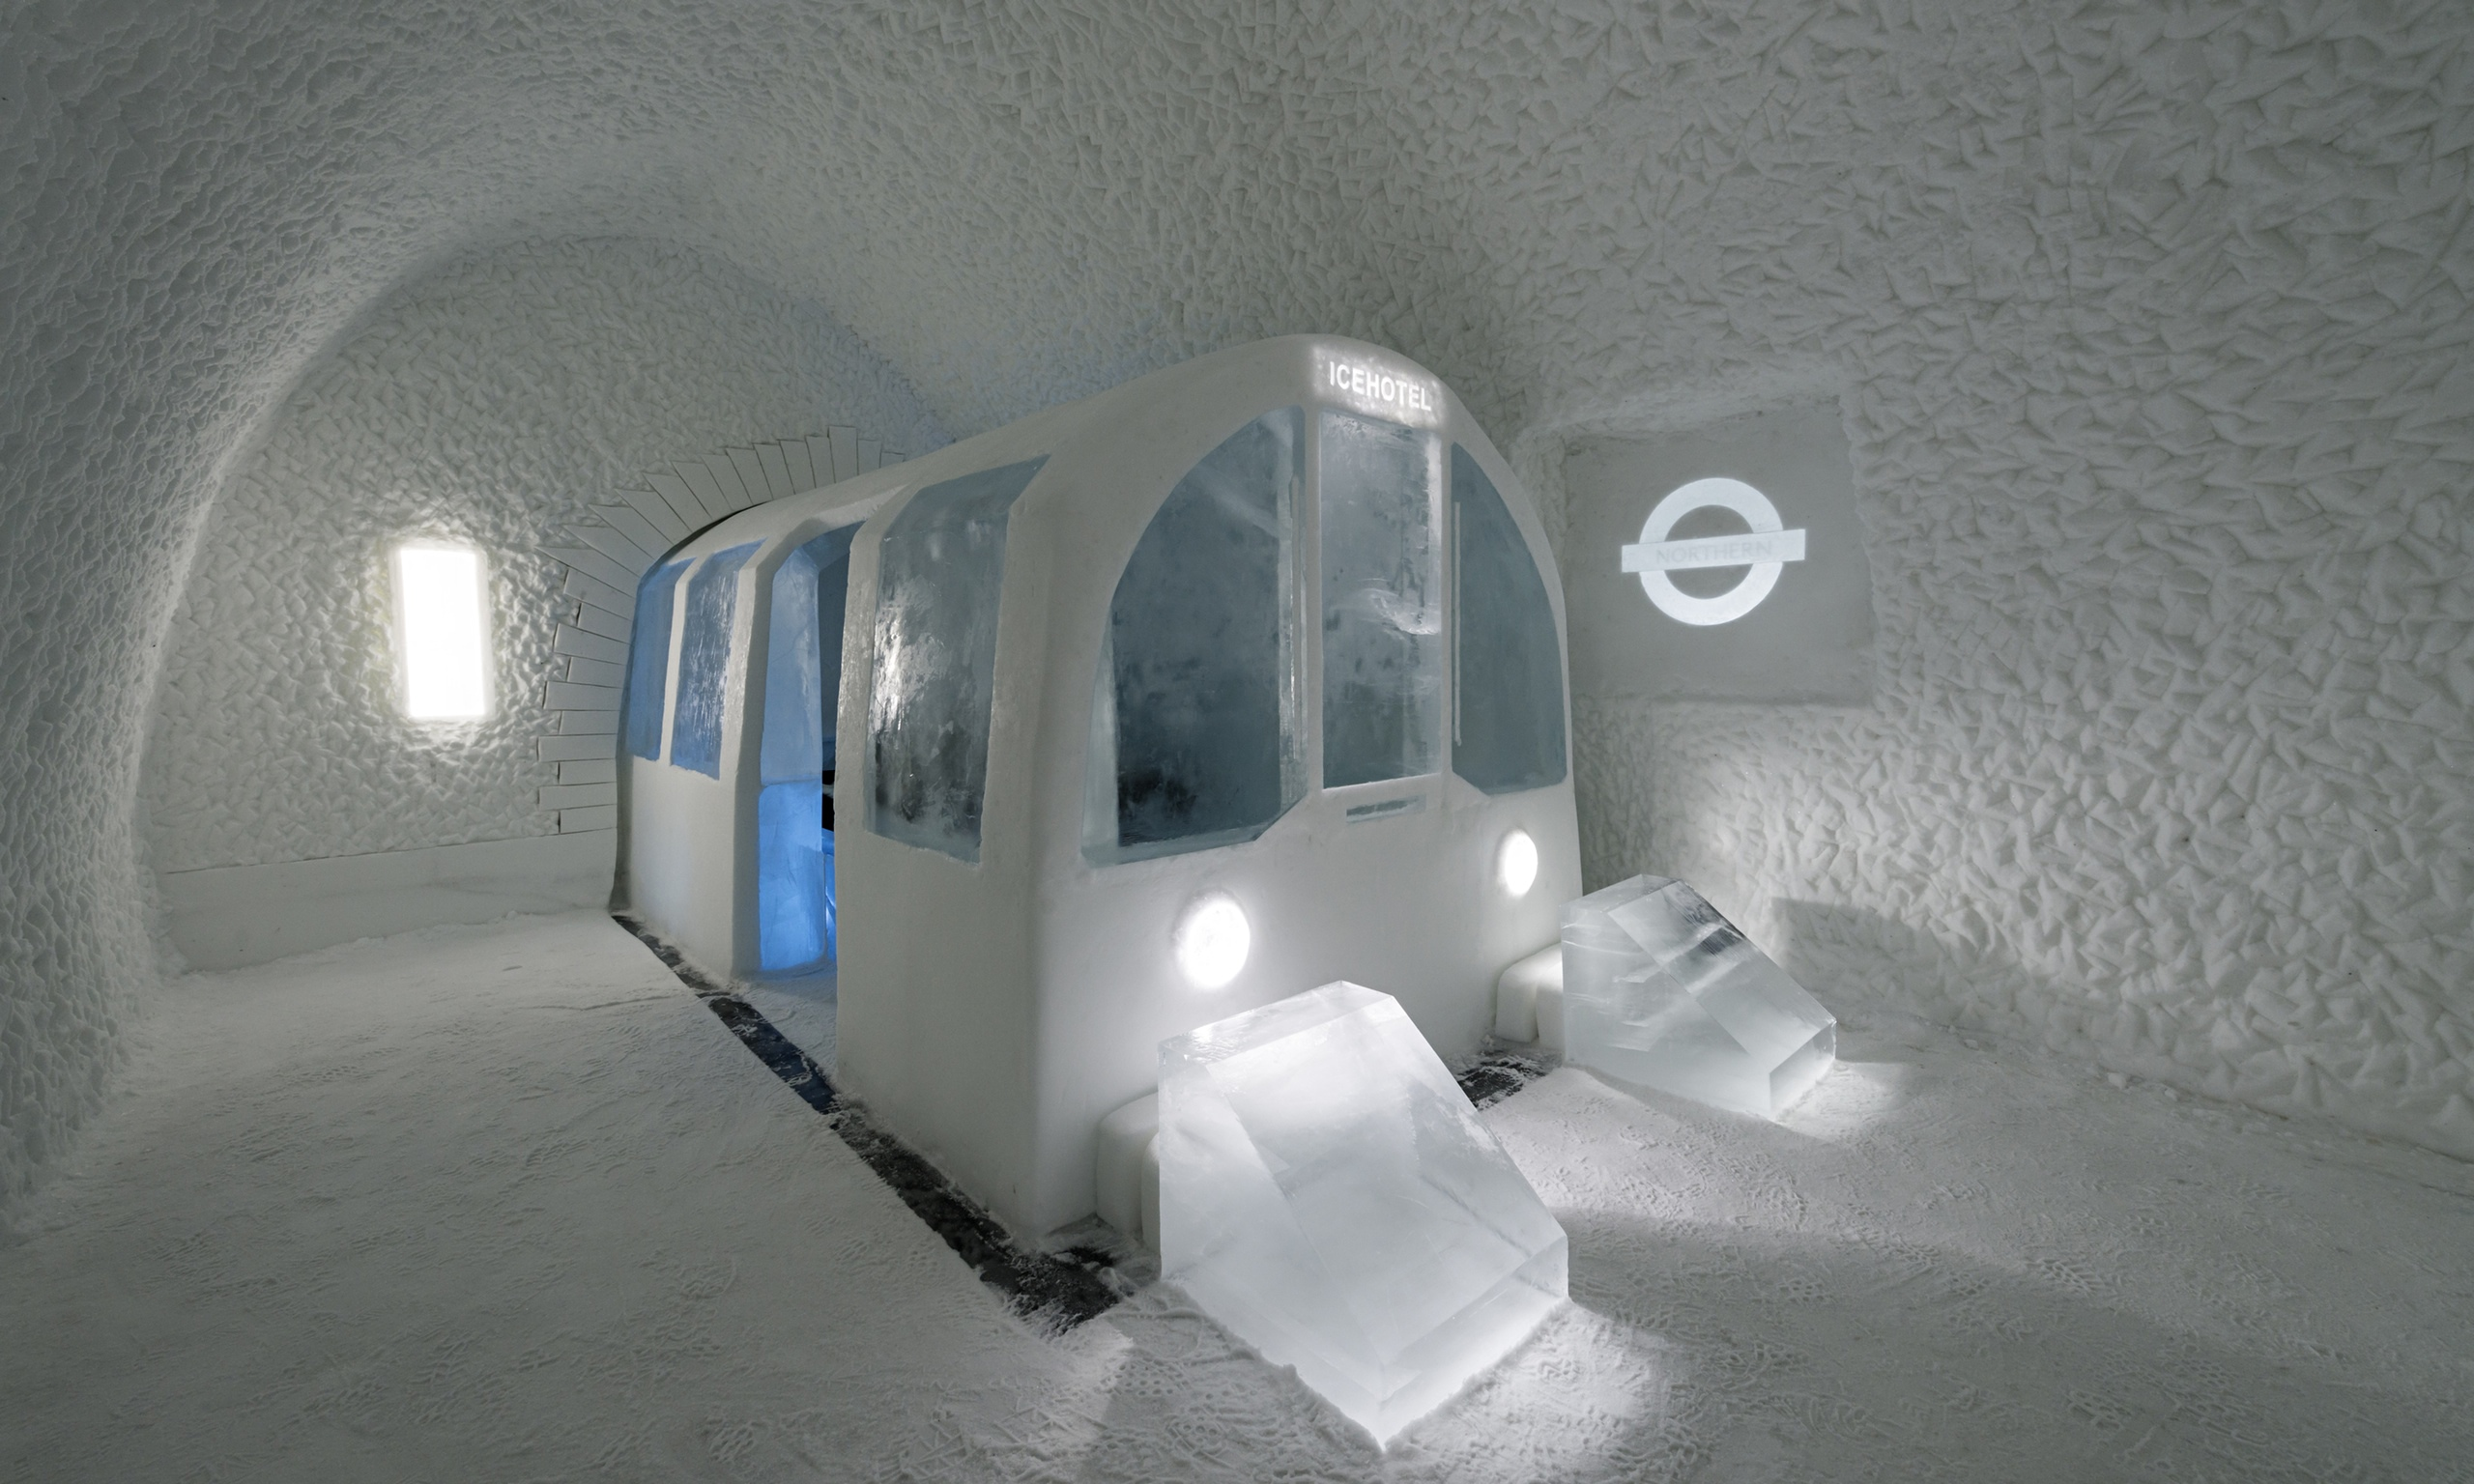 Travel News Round Up Design An Ice Room And New India